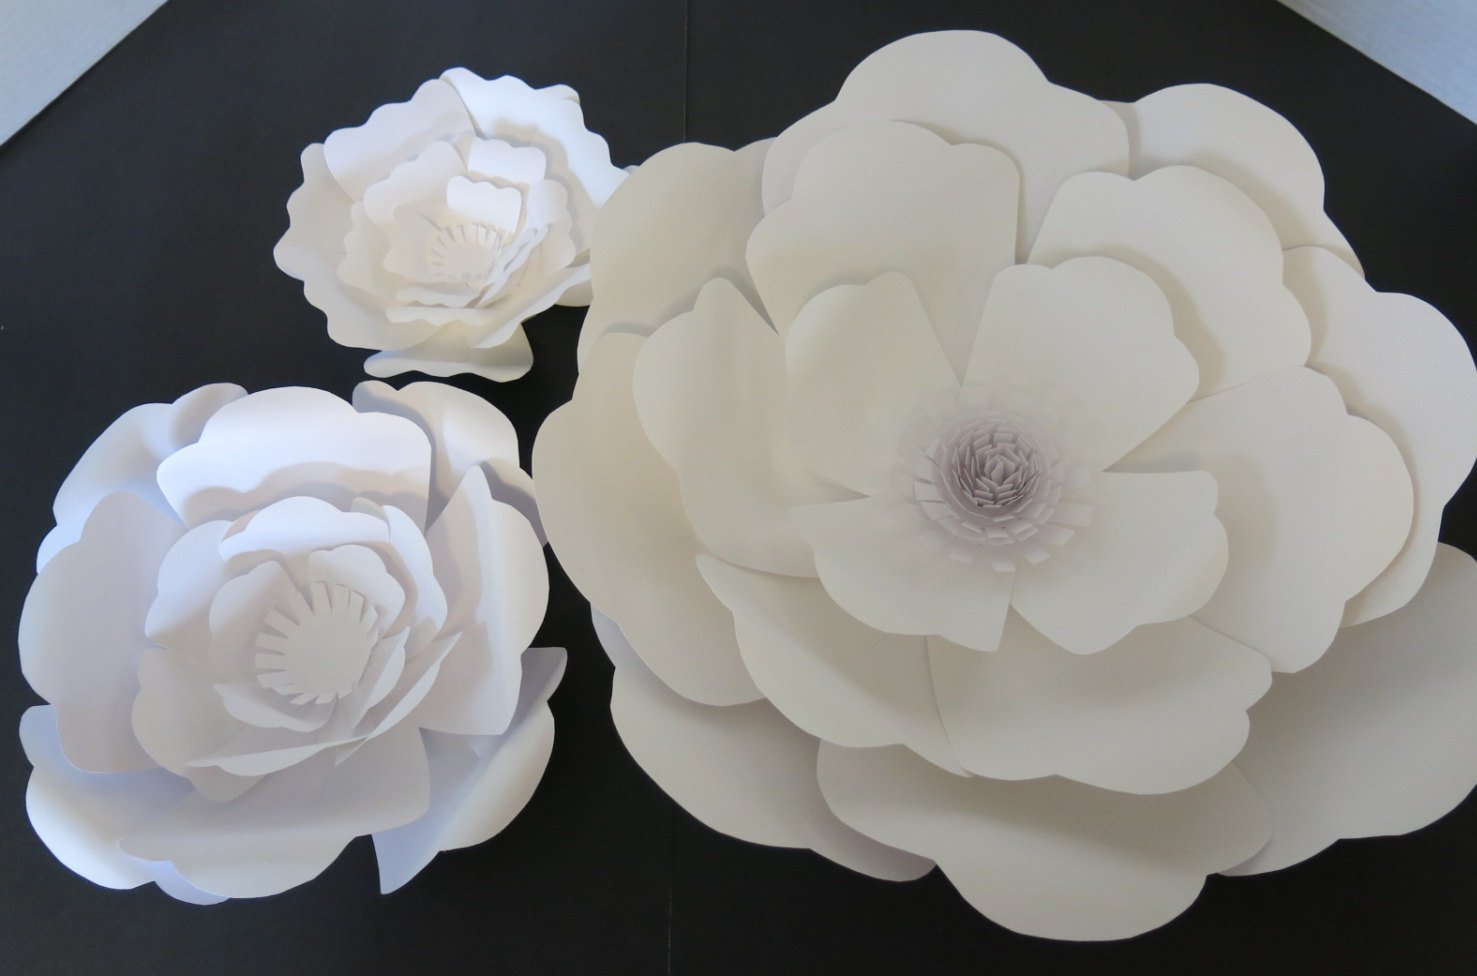 Giant Paper Flowers, Rose Wedding Photography Background, Bridal Shower Photo Backdrop, Extra Large Wall Flowers, Baby Nursery Floral Decor, Popular Home Decor Trend, Arch Cover 6-16'' Blooms, Set of 3 by Always In Blossom